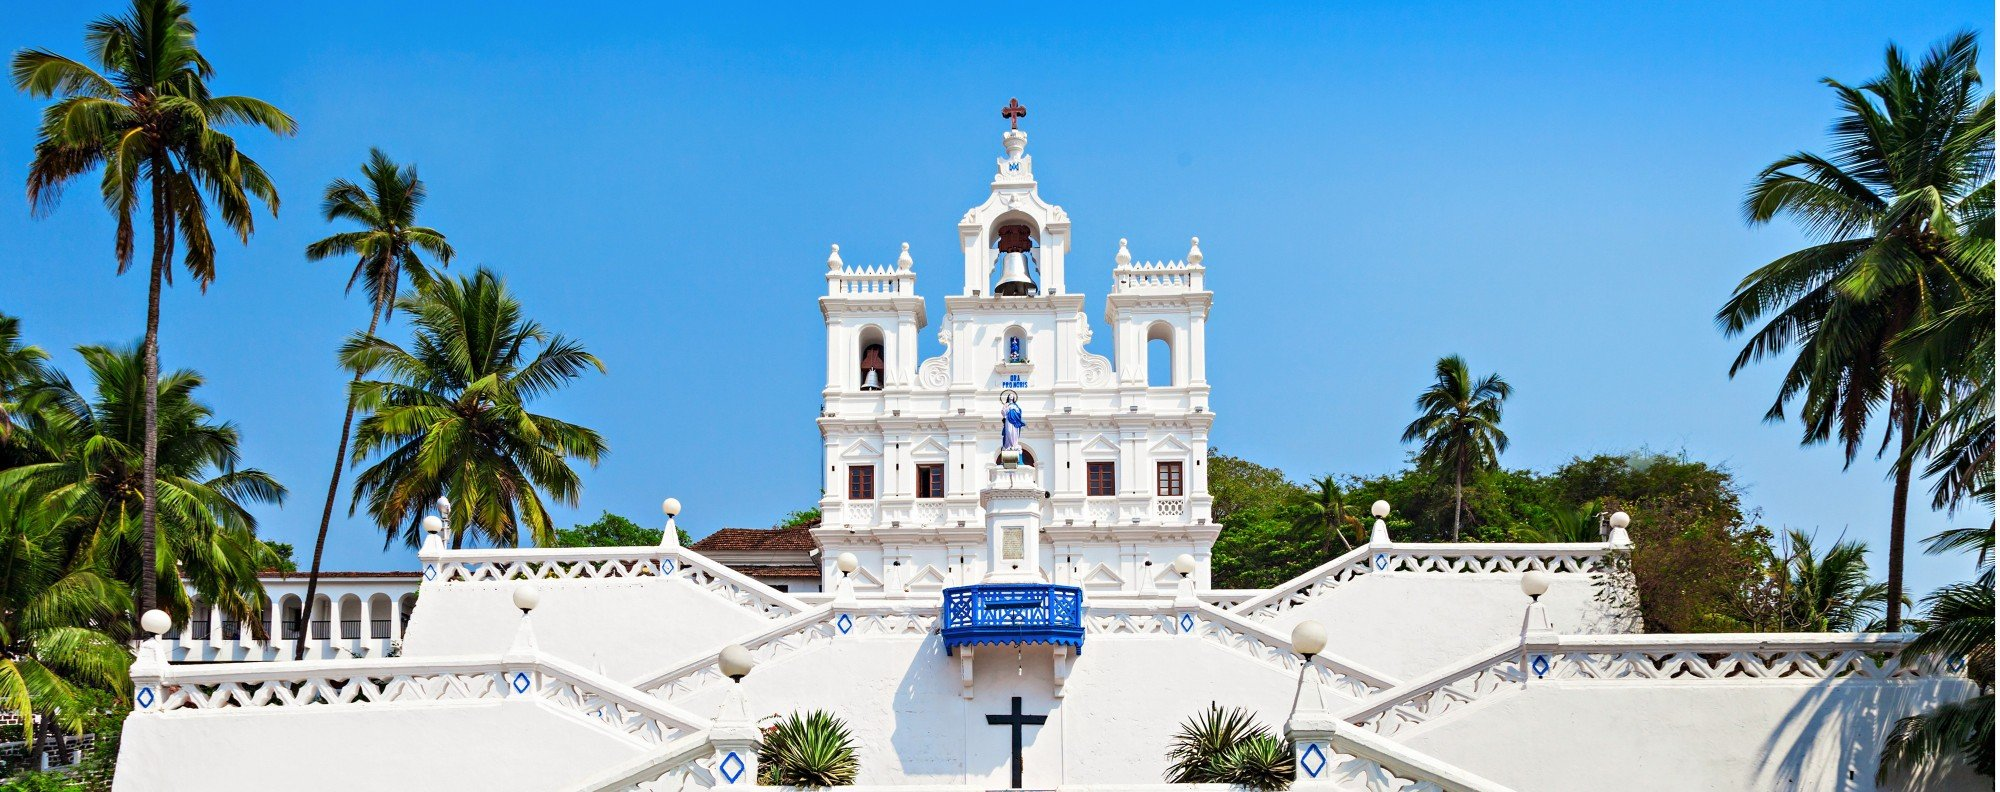 Our Lady of the Immaculate Conception Church, Goa.